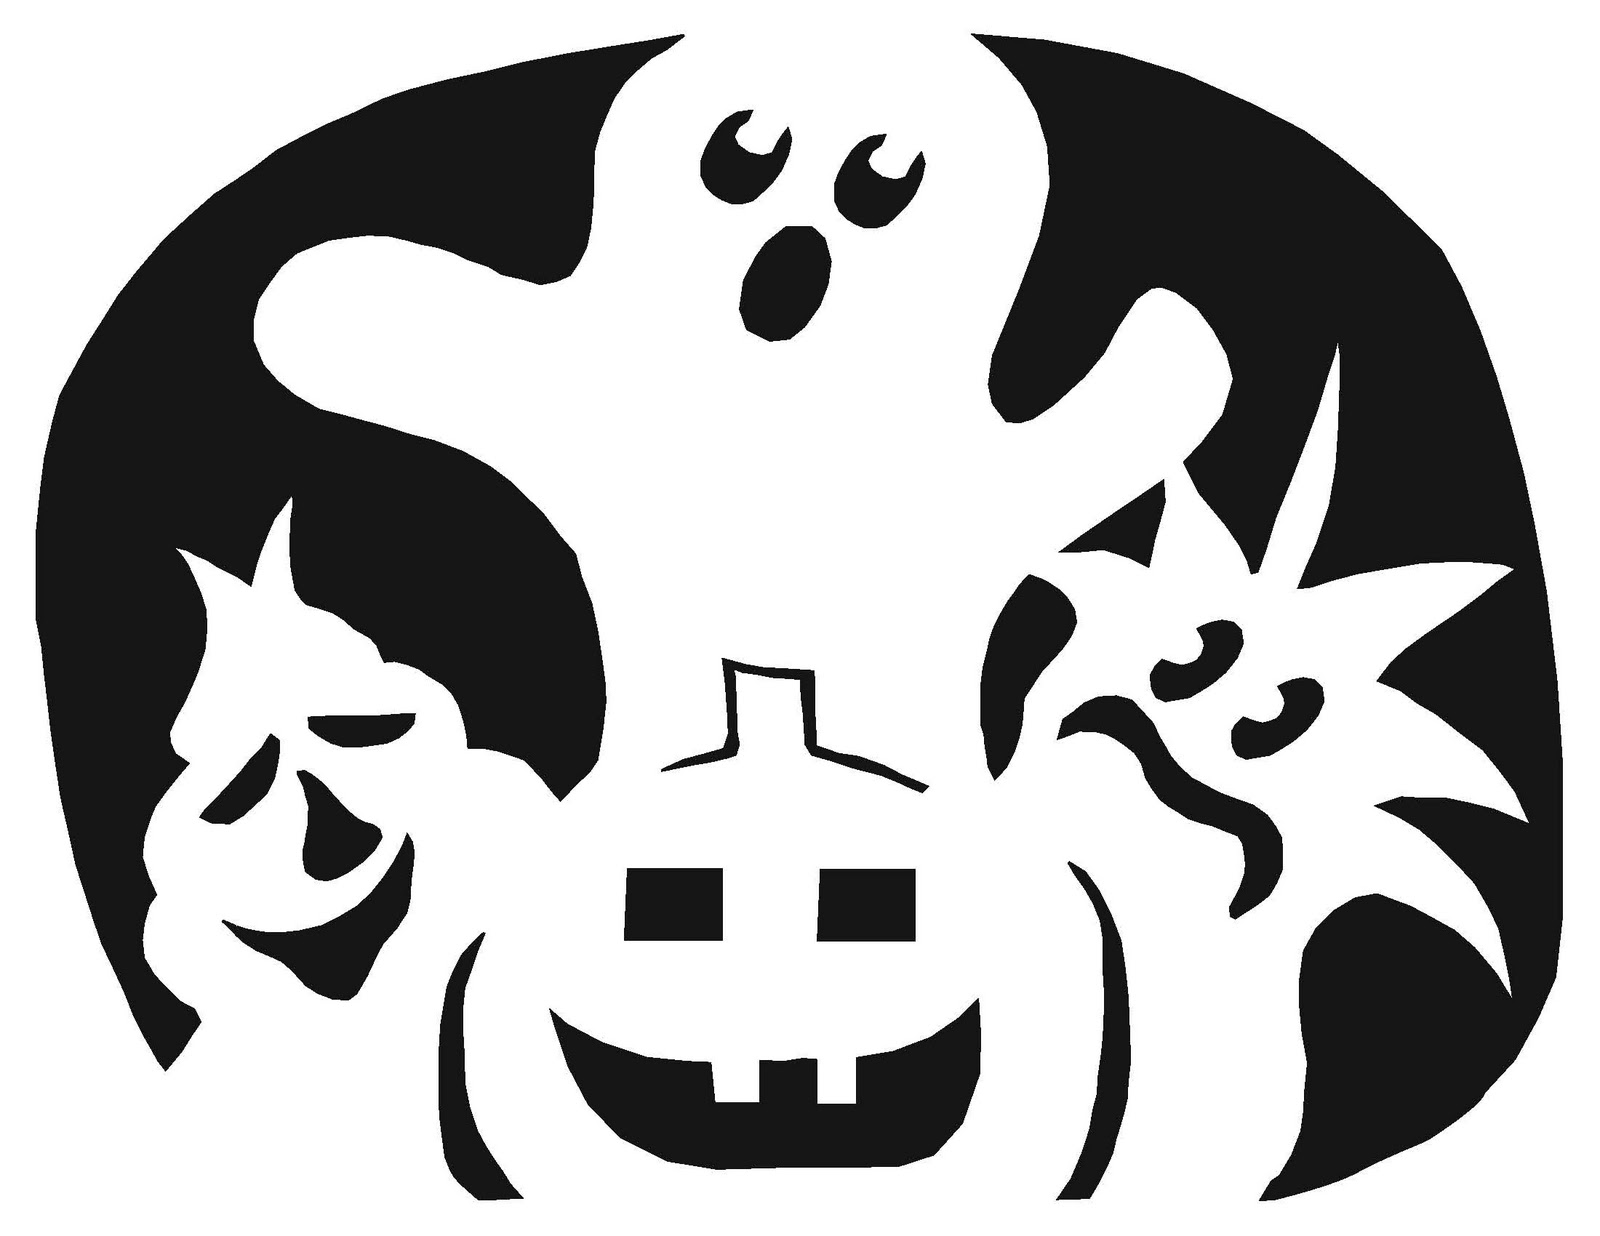 free printable pumpkin carving stencils - Kubre.euforic.co